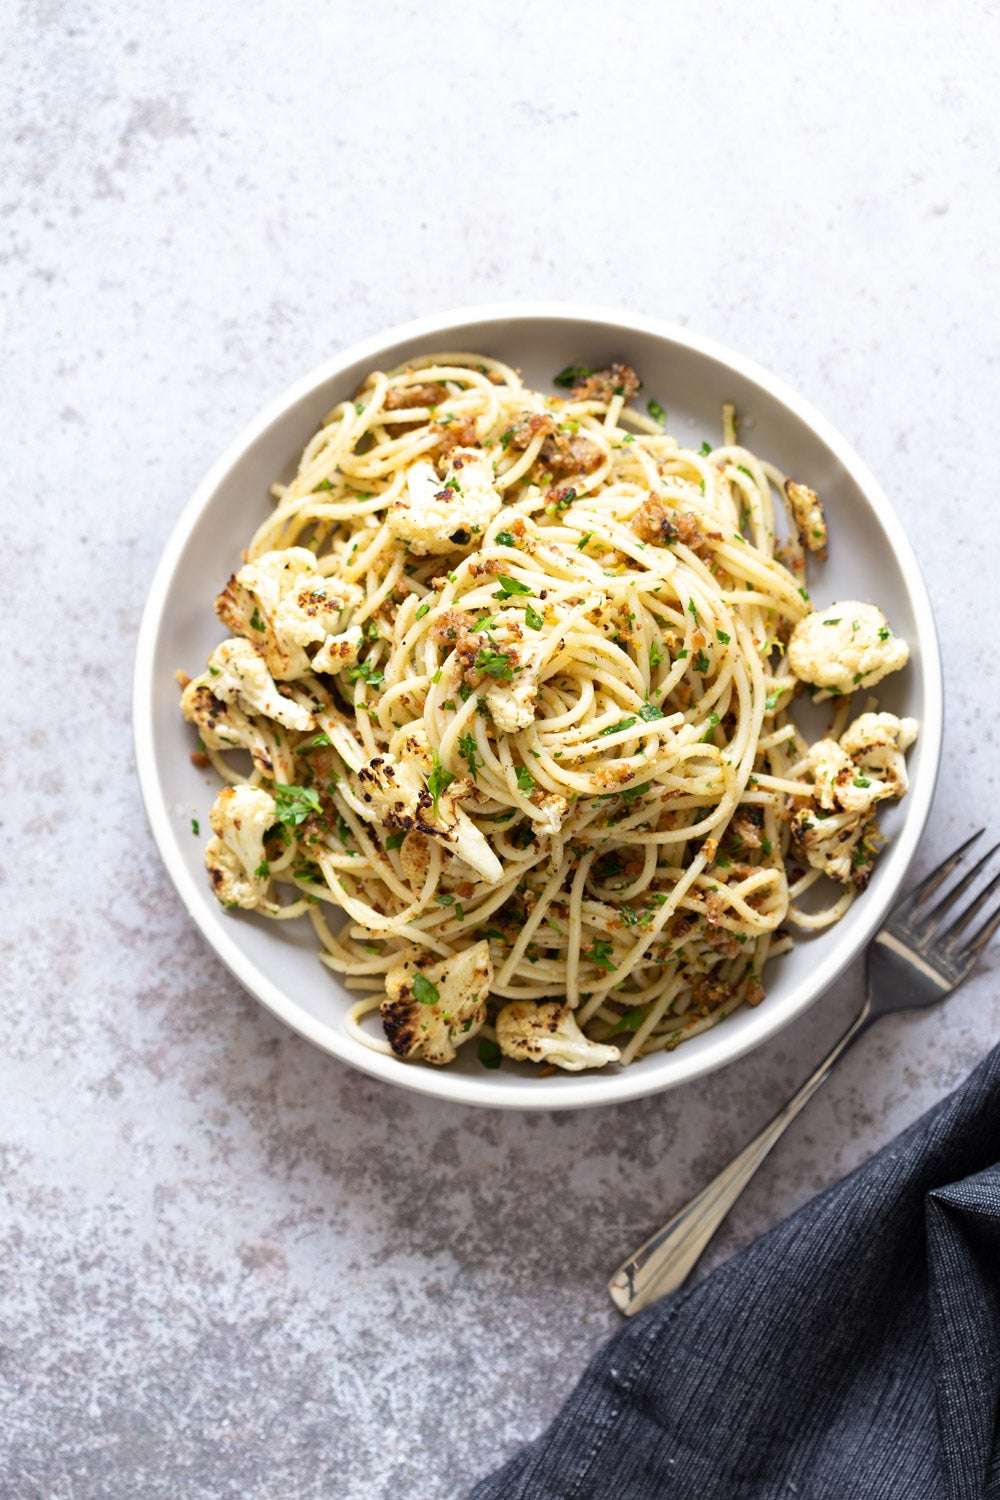 photo_courtesy_of_veganricha(SPAGHETTI WITH TOASTED GARLIC BREADCRUMBS AND BLISTERED CAULIFLOWER)